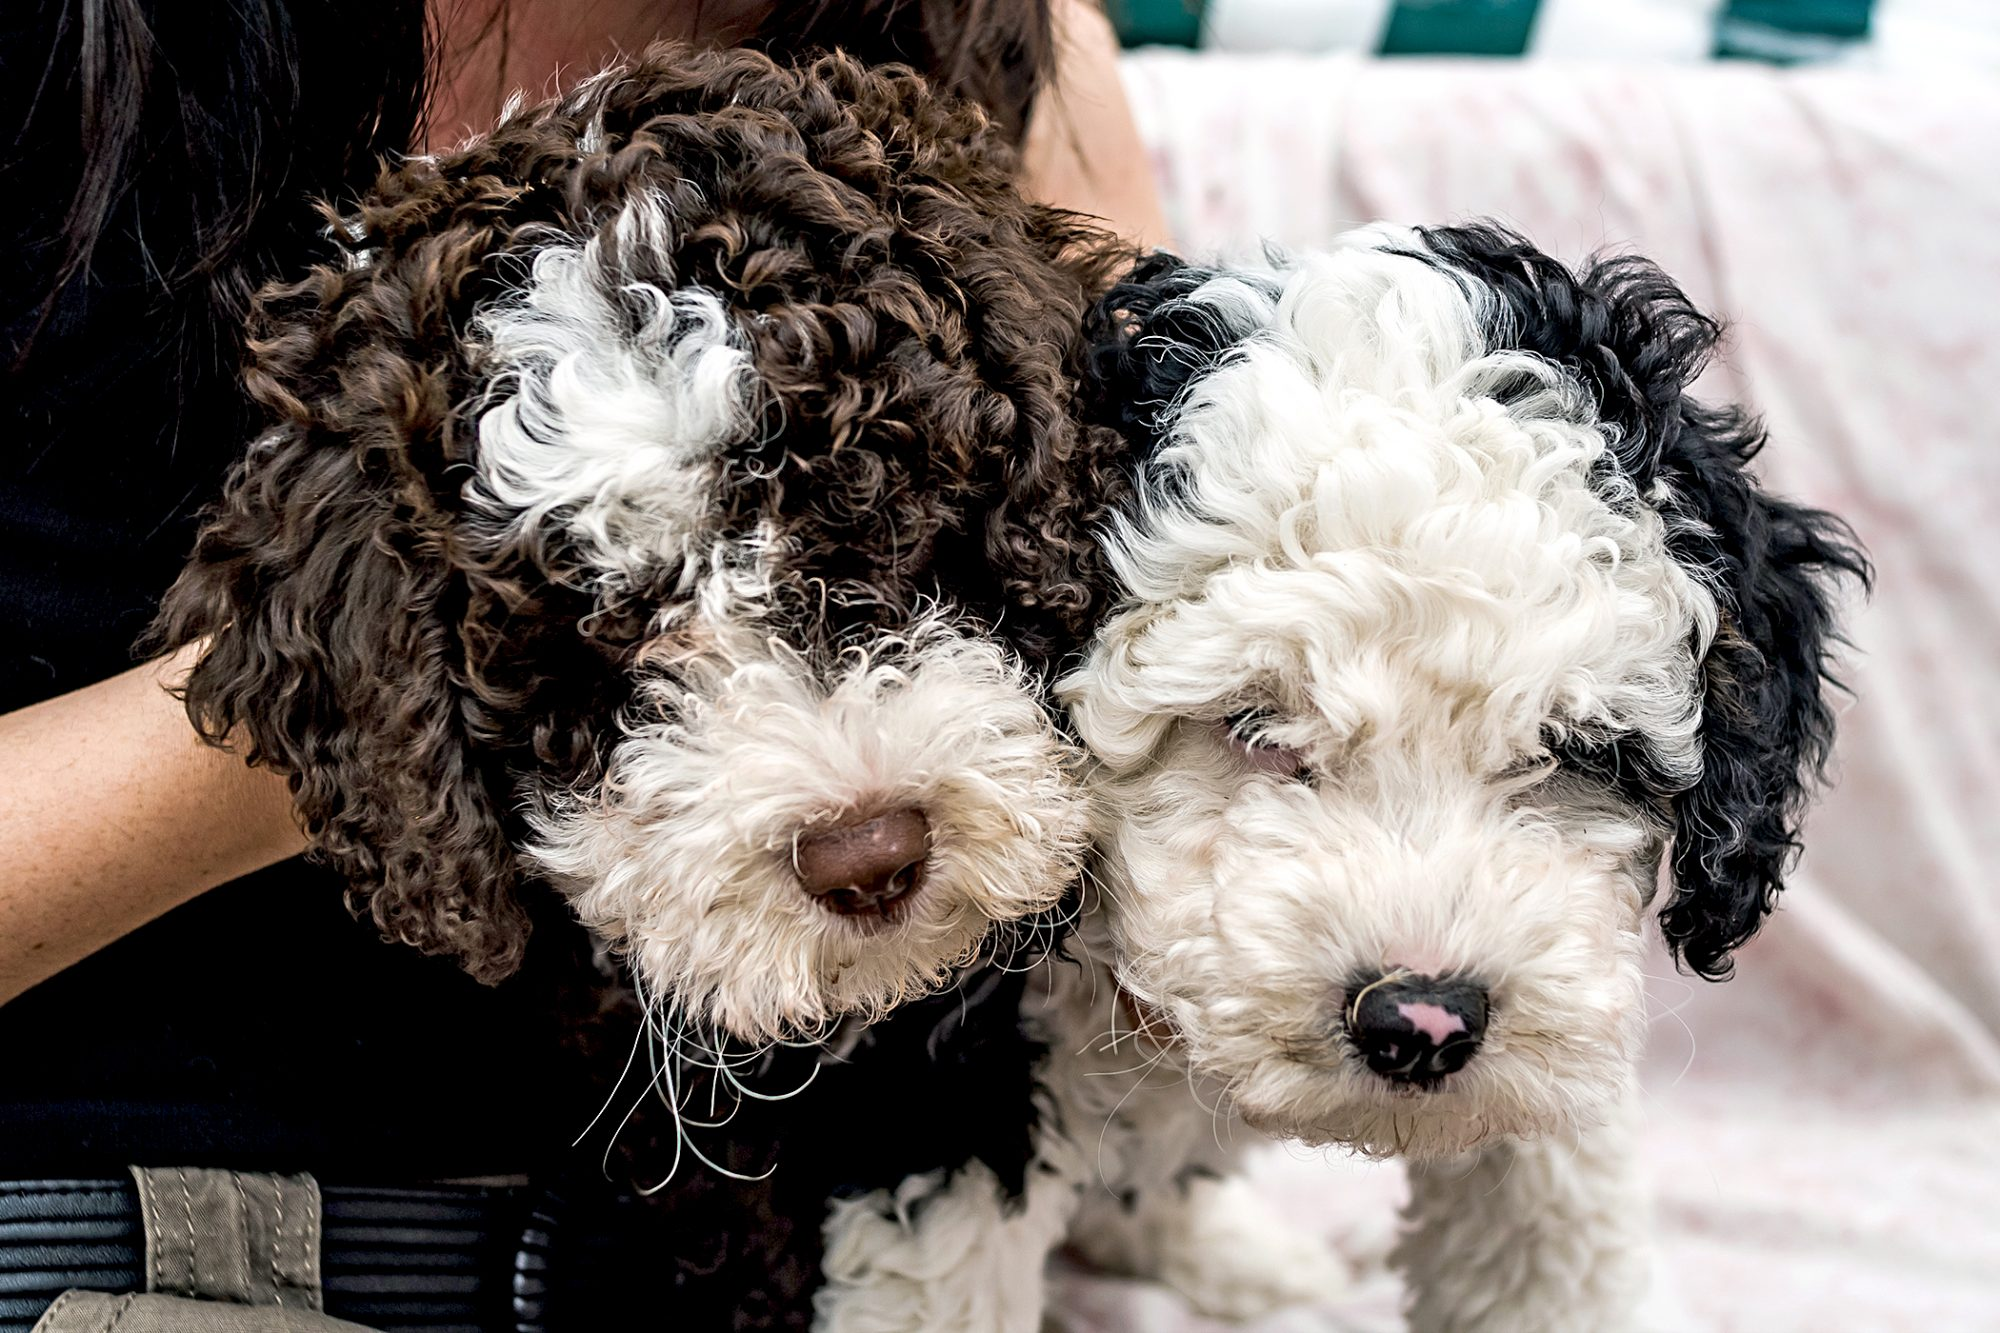 a black and white spanish water dog and a brown and white spanish water dog sitting with female owner